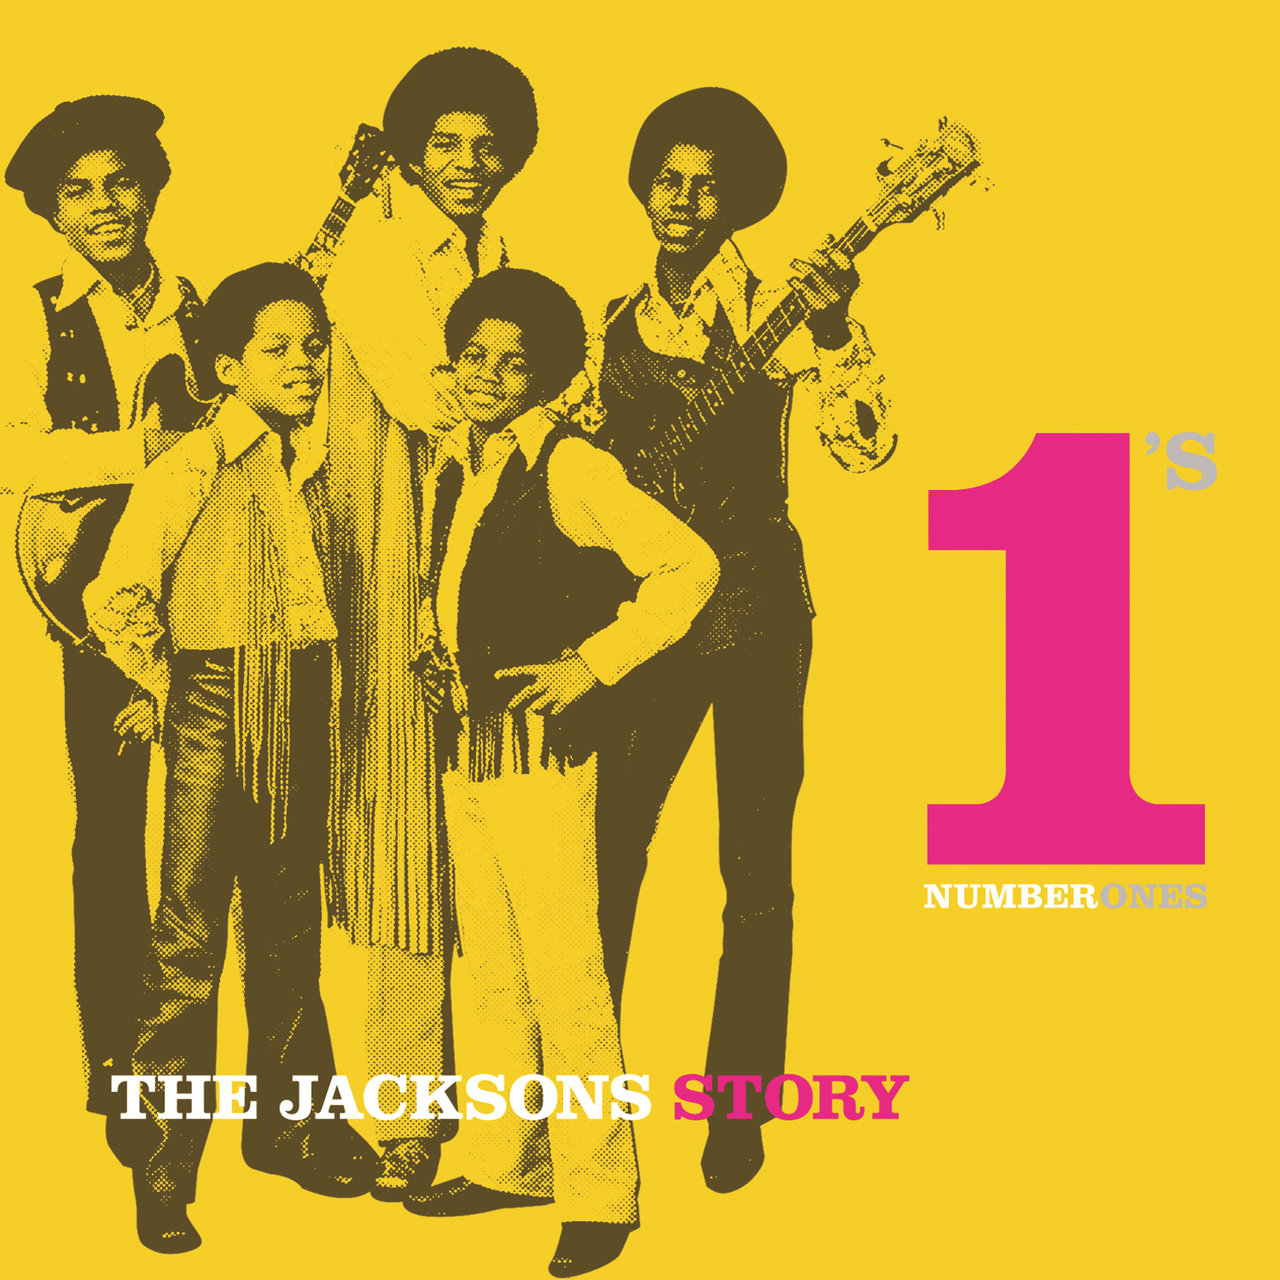 Number 1's: The Jacksons Story